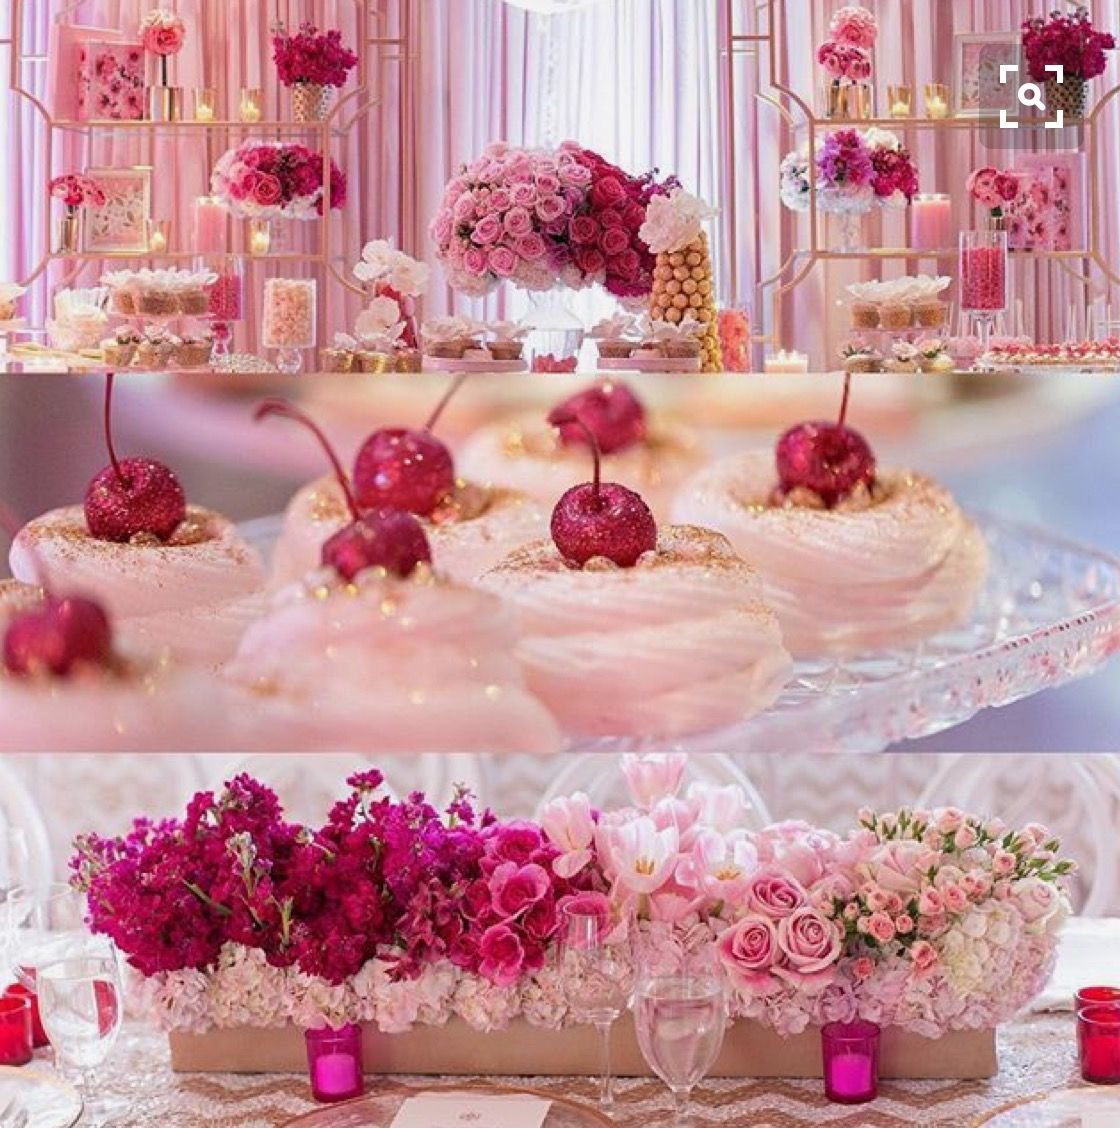 Candy bar holidays sweets ice cream party pink parties